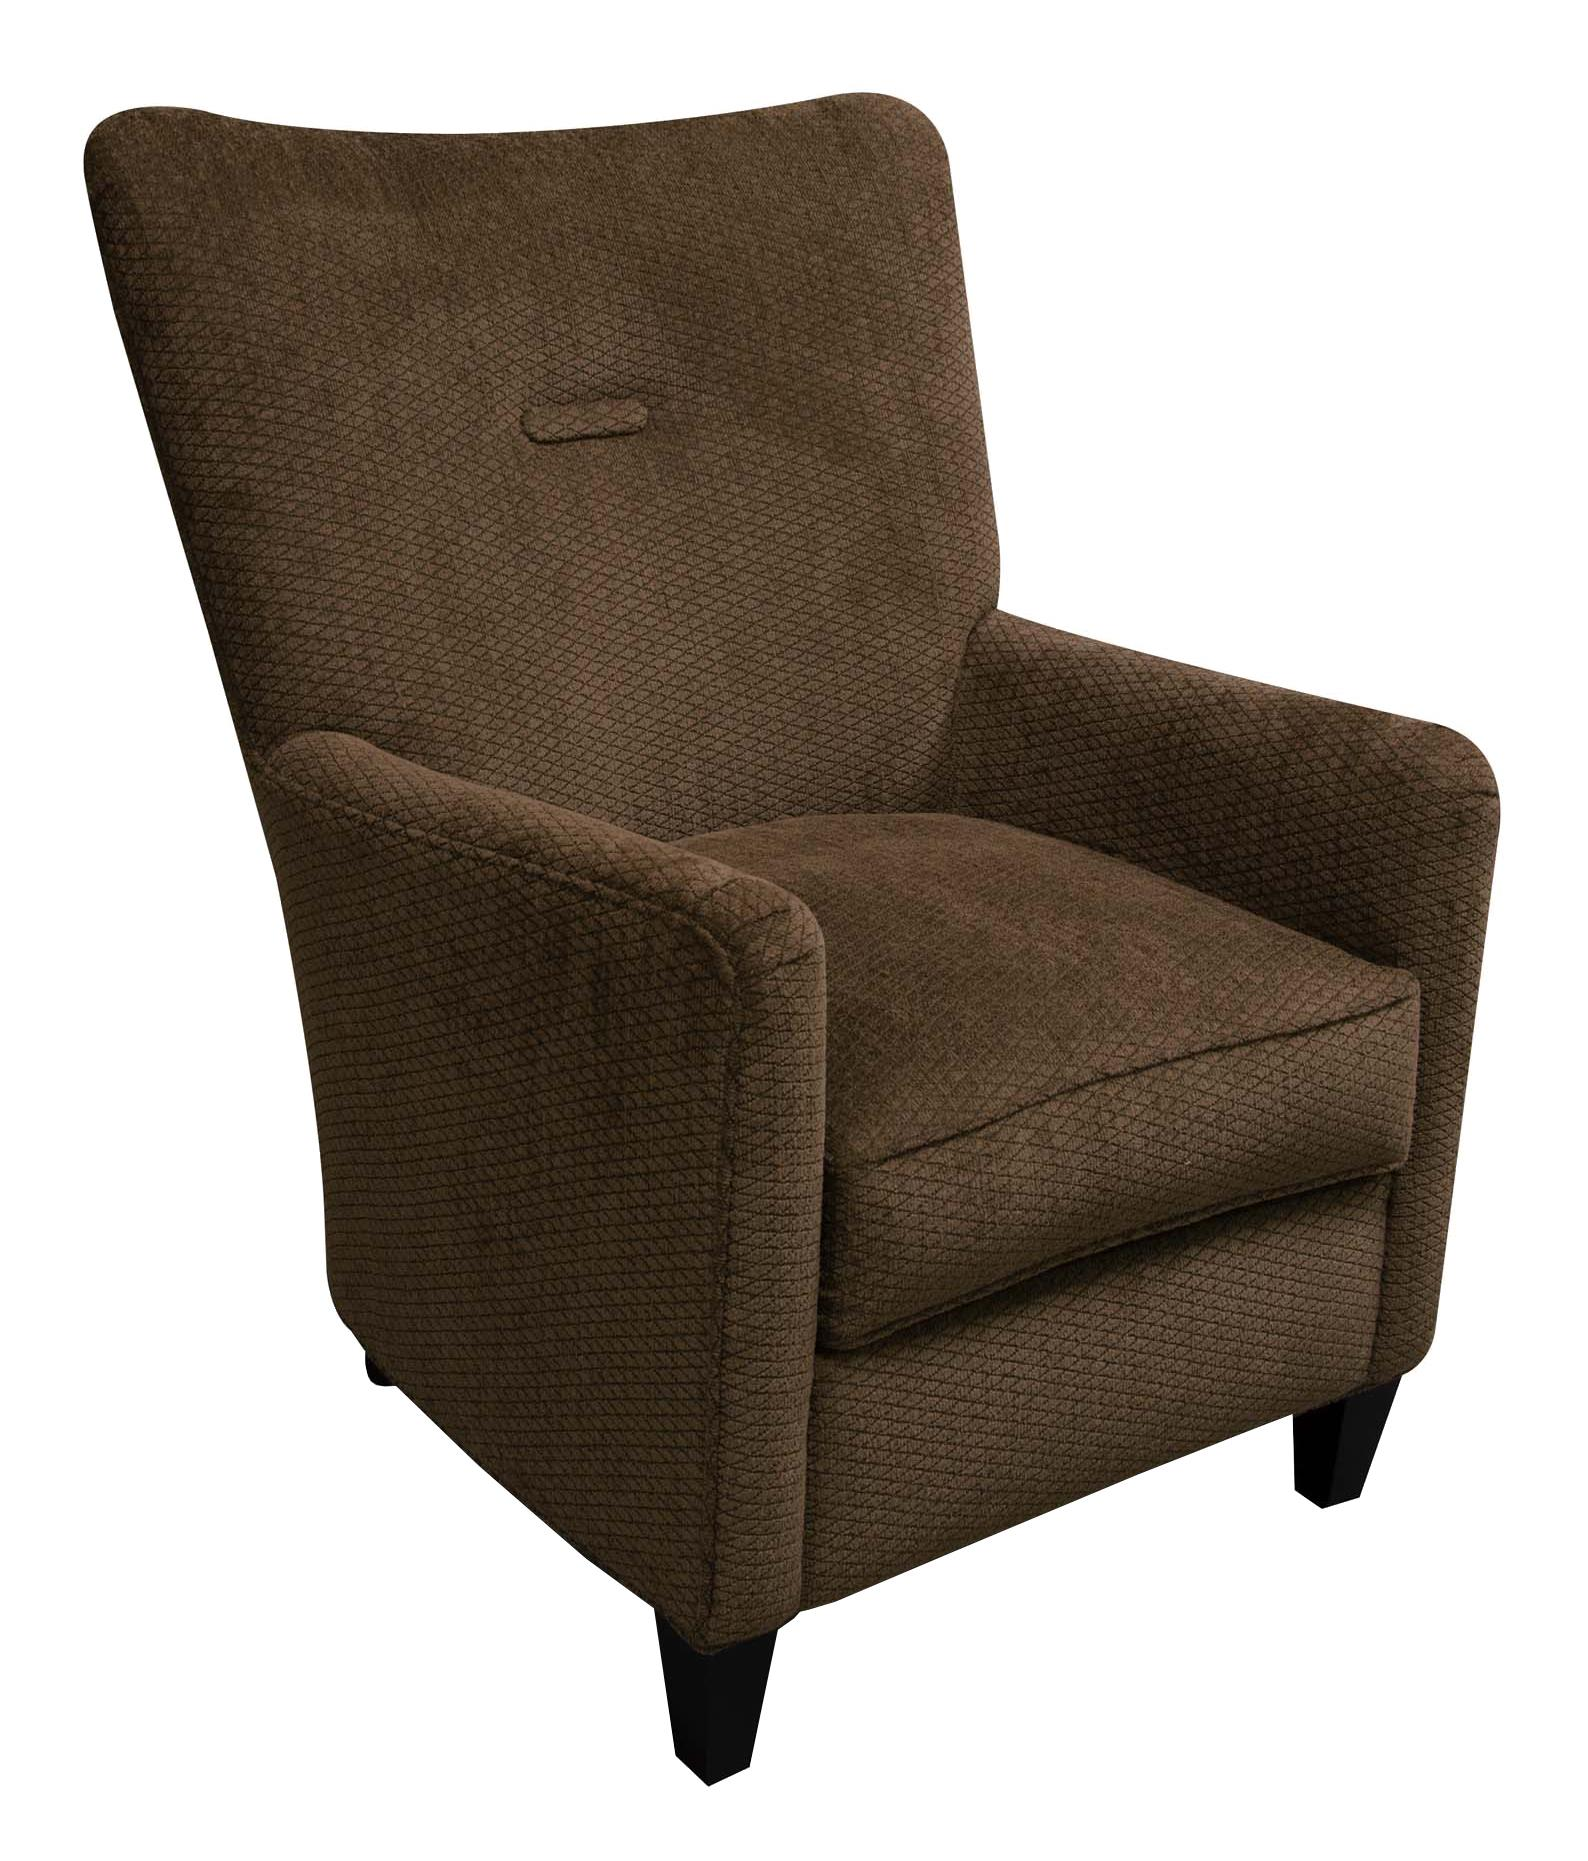 England Daughtry Arm Chair - Item Number: 1U04-7376